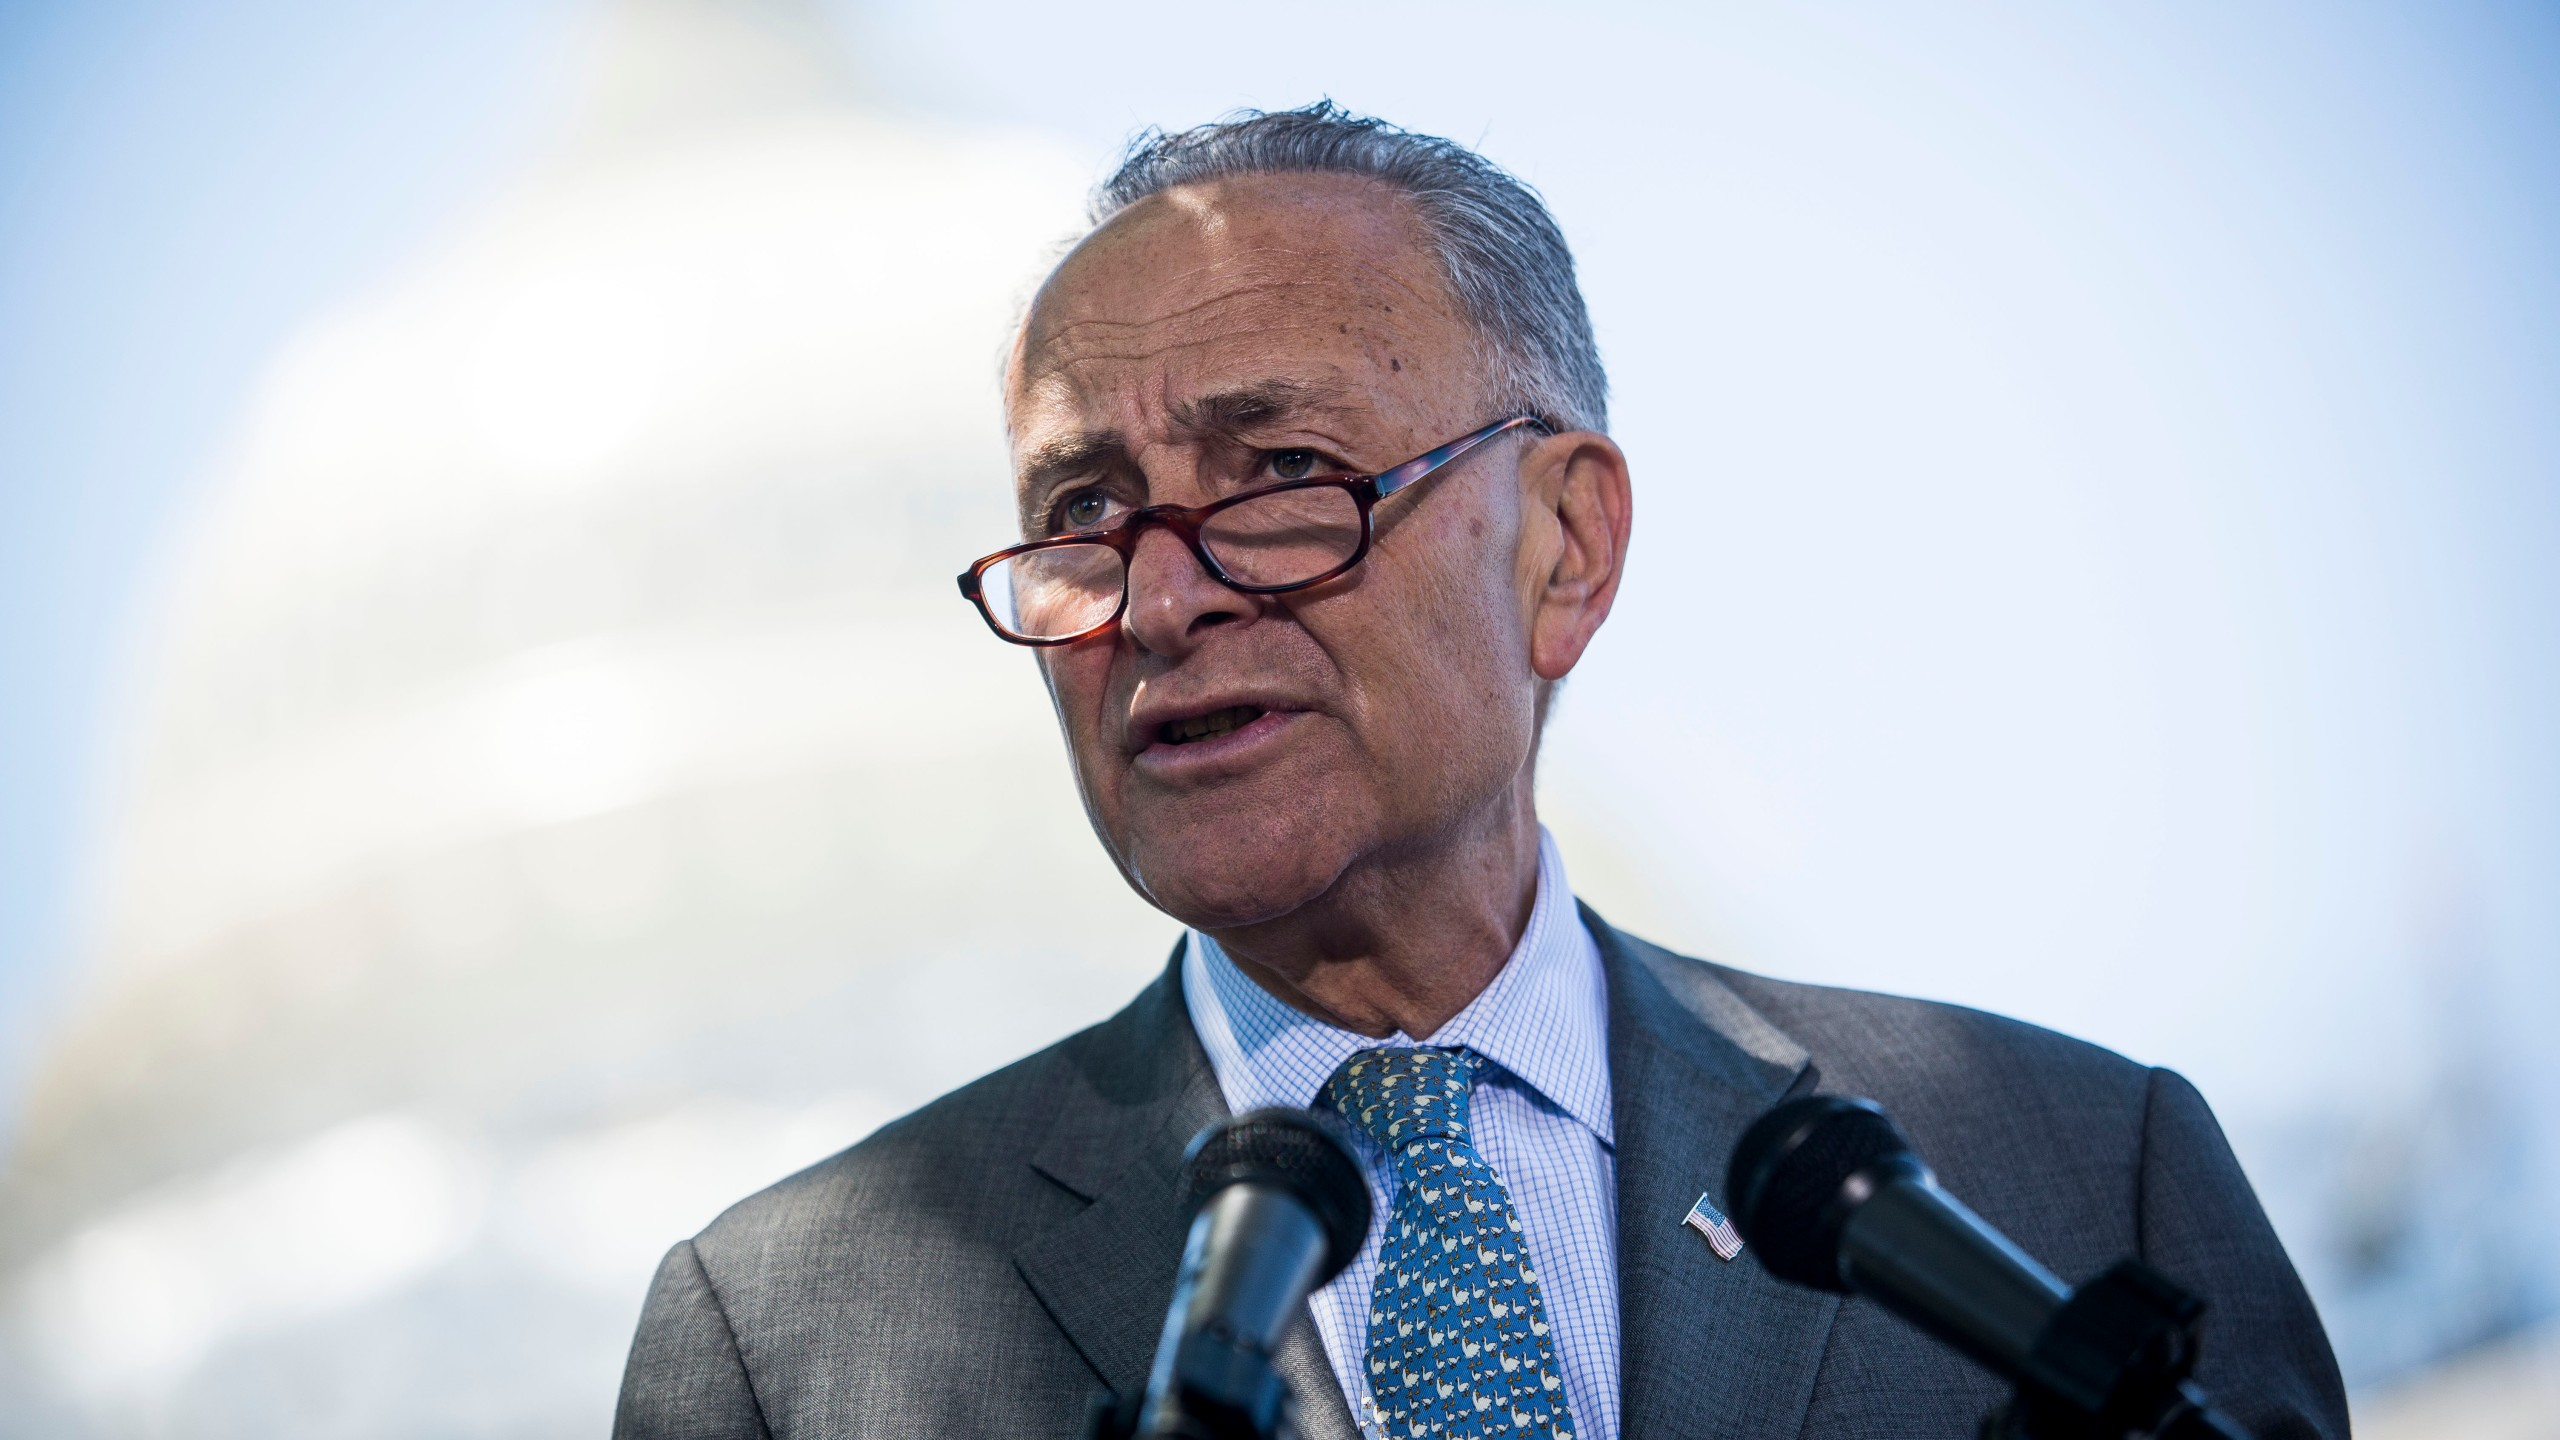 Schumer vows push for bill to improve phone access during emergencies